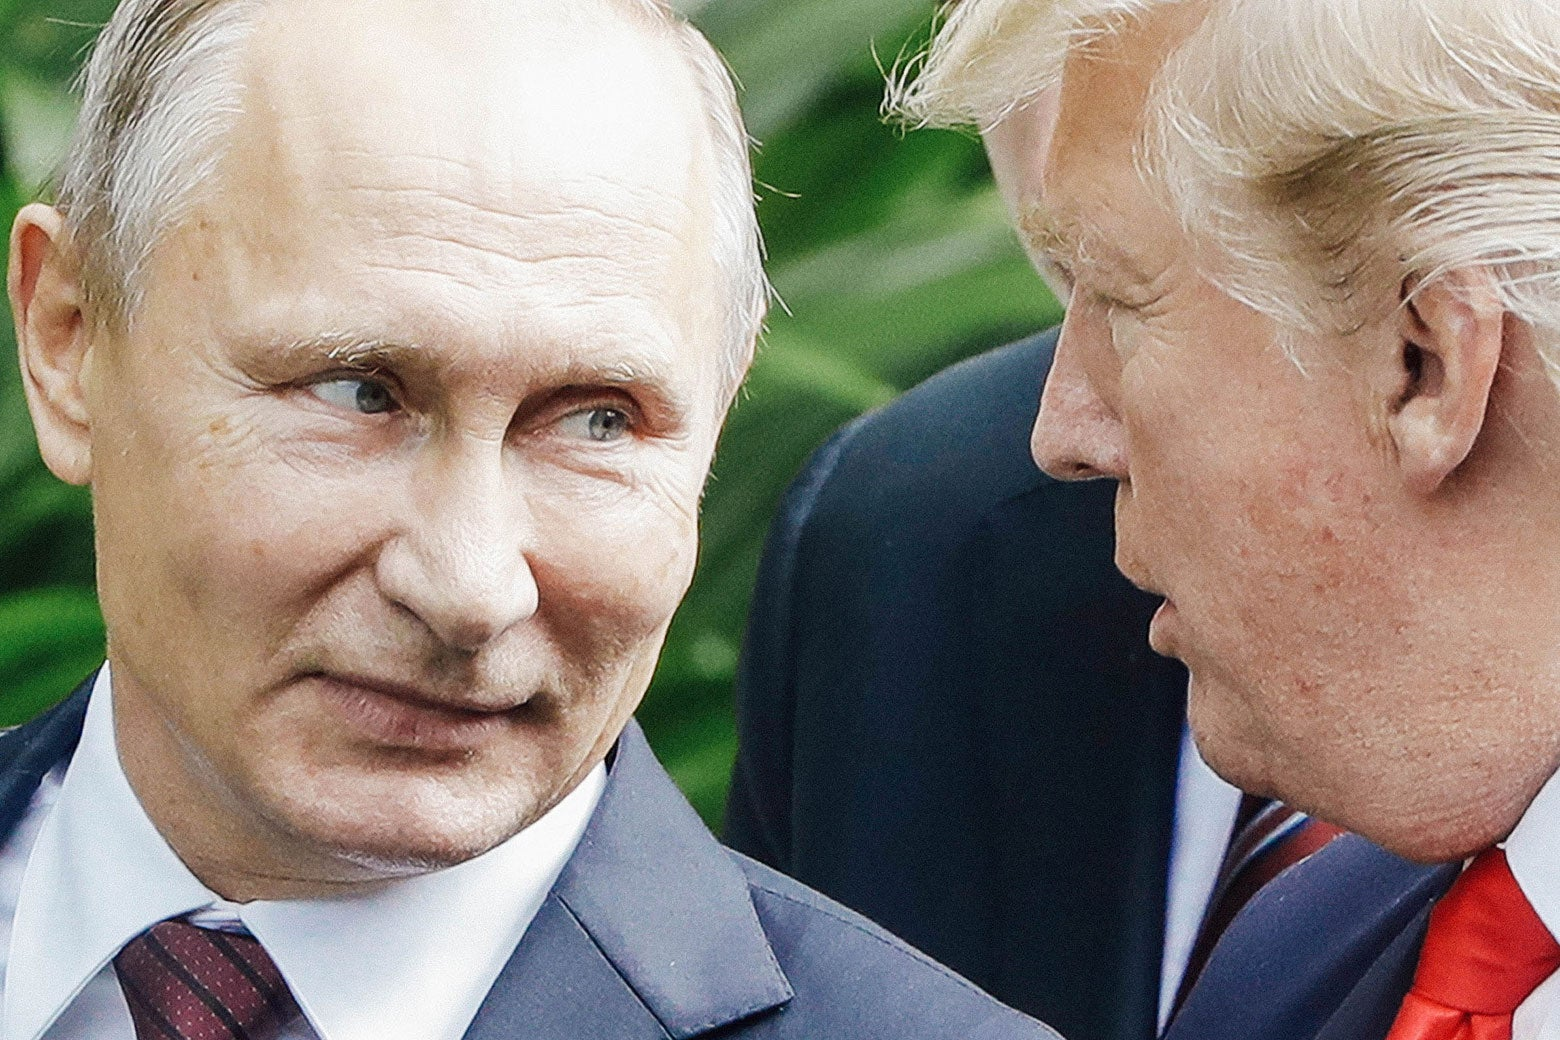 Vladimir Putin talking to Donald Trump.